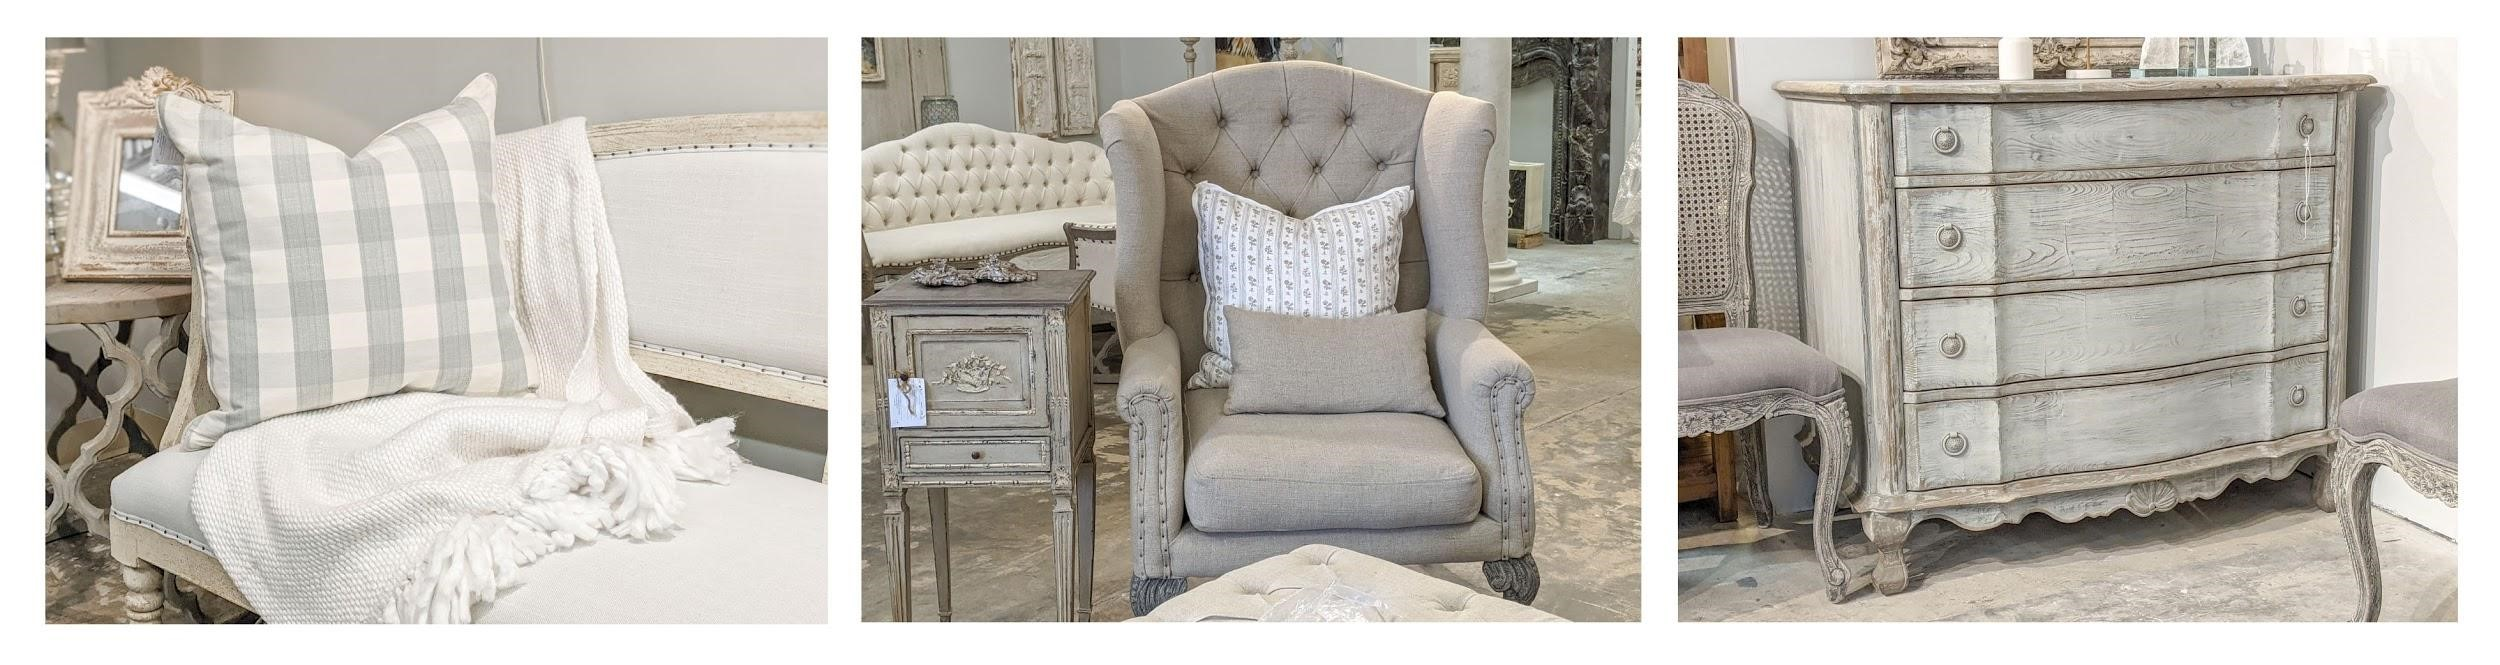 A collage of French cottage style home decor including gingham check fabric pillows, a cozy tufted chair, and a chalk finish paint chest of drawers or commode.